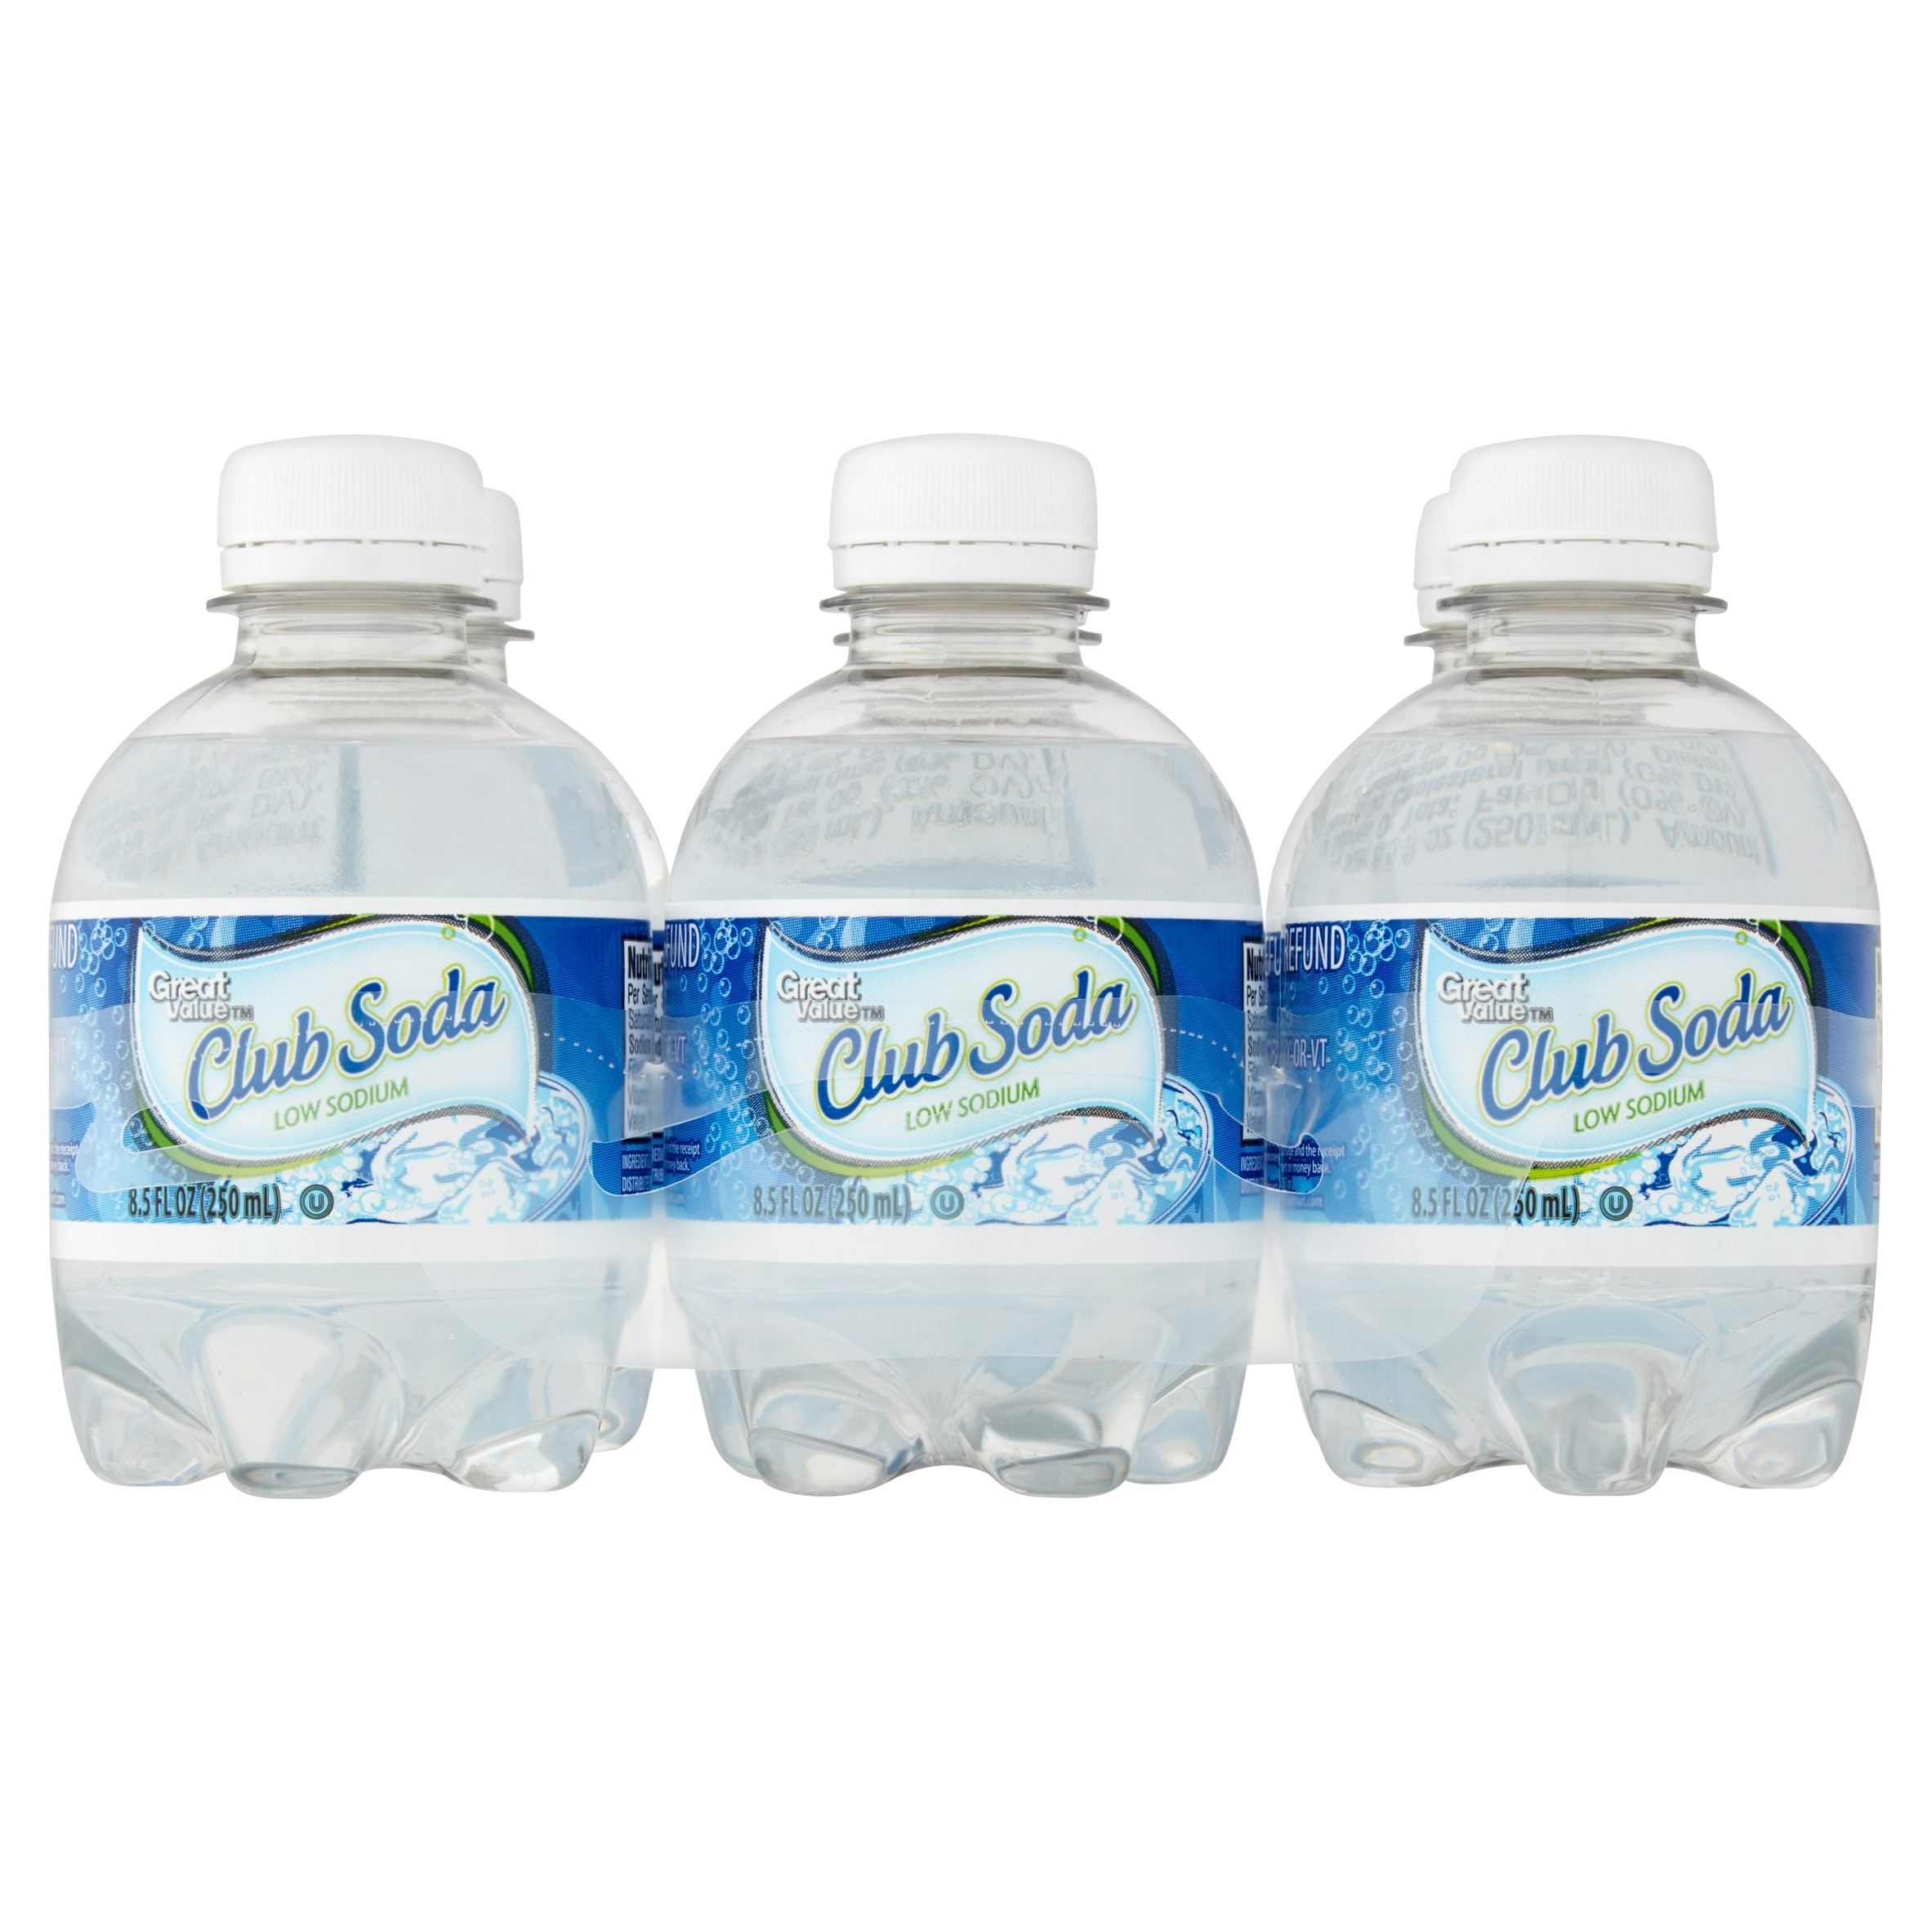 Great Value Club Soda Beverage, 8.5 fl oz, 6 pack